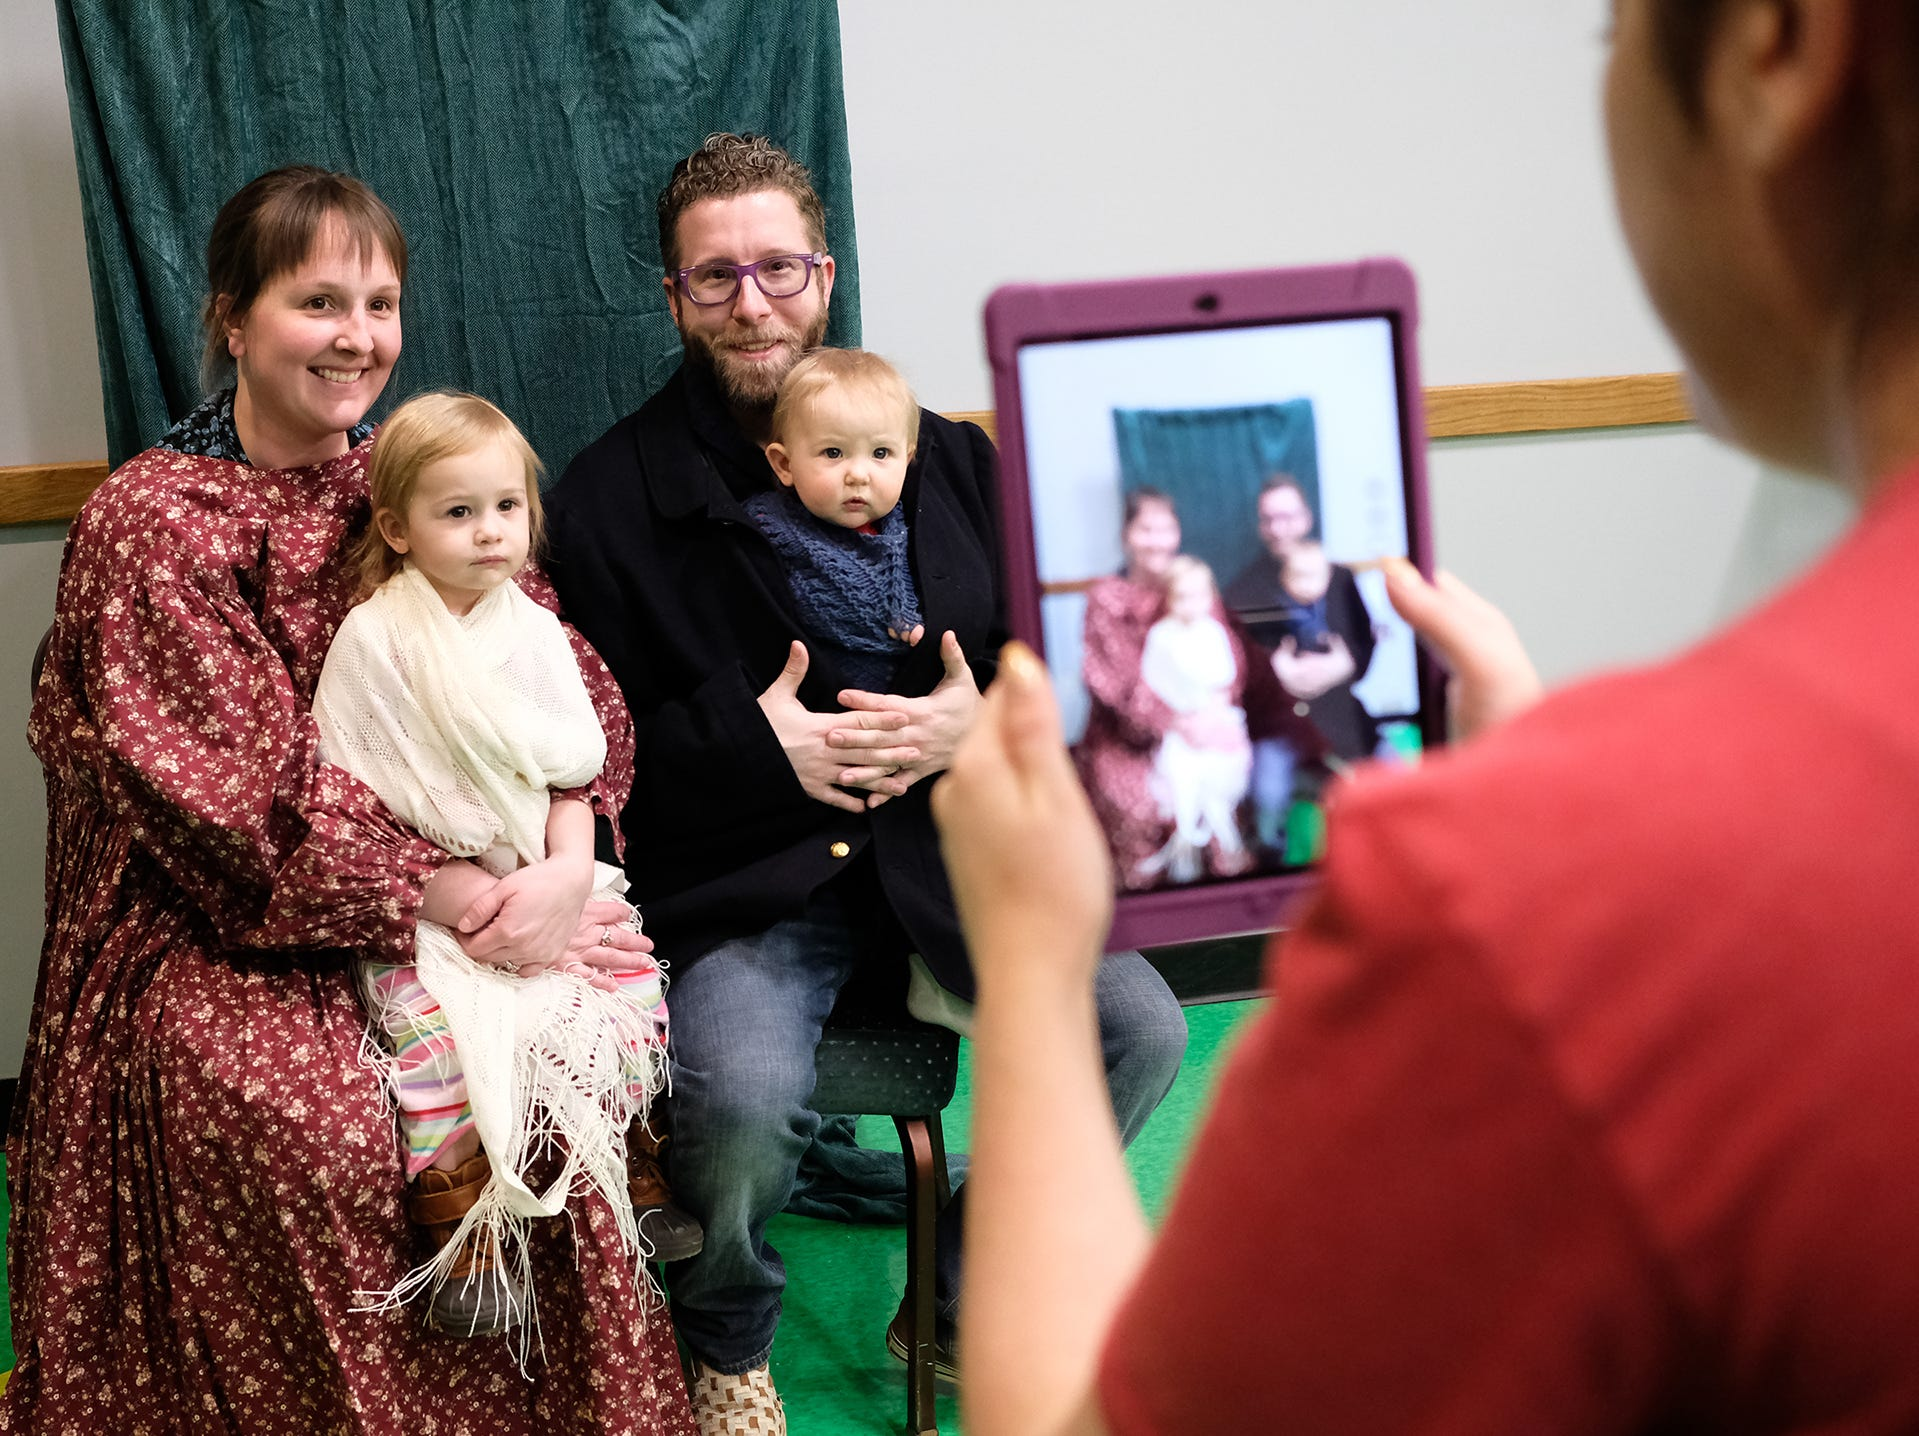 Jack and Ashley Temsey from Potterville, and their two children Maesen, 2, and Charlotte, 10 months, have a photo taken with period clothing at a Statehood Day celebration event at the Michigan Library and Historical Center Saturday, Jan. 26, 2019. Michigan became a state on this day in 1837.